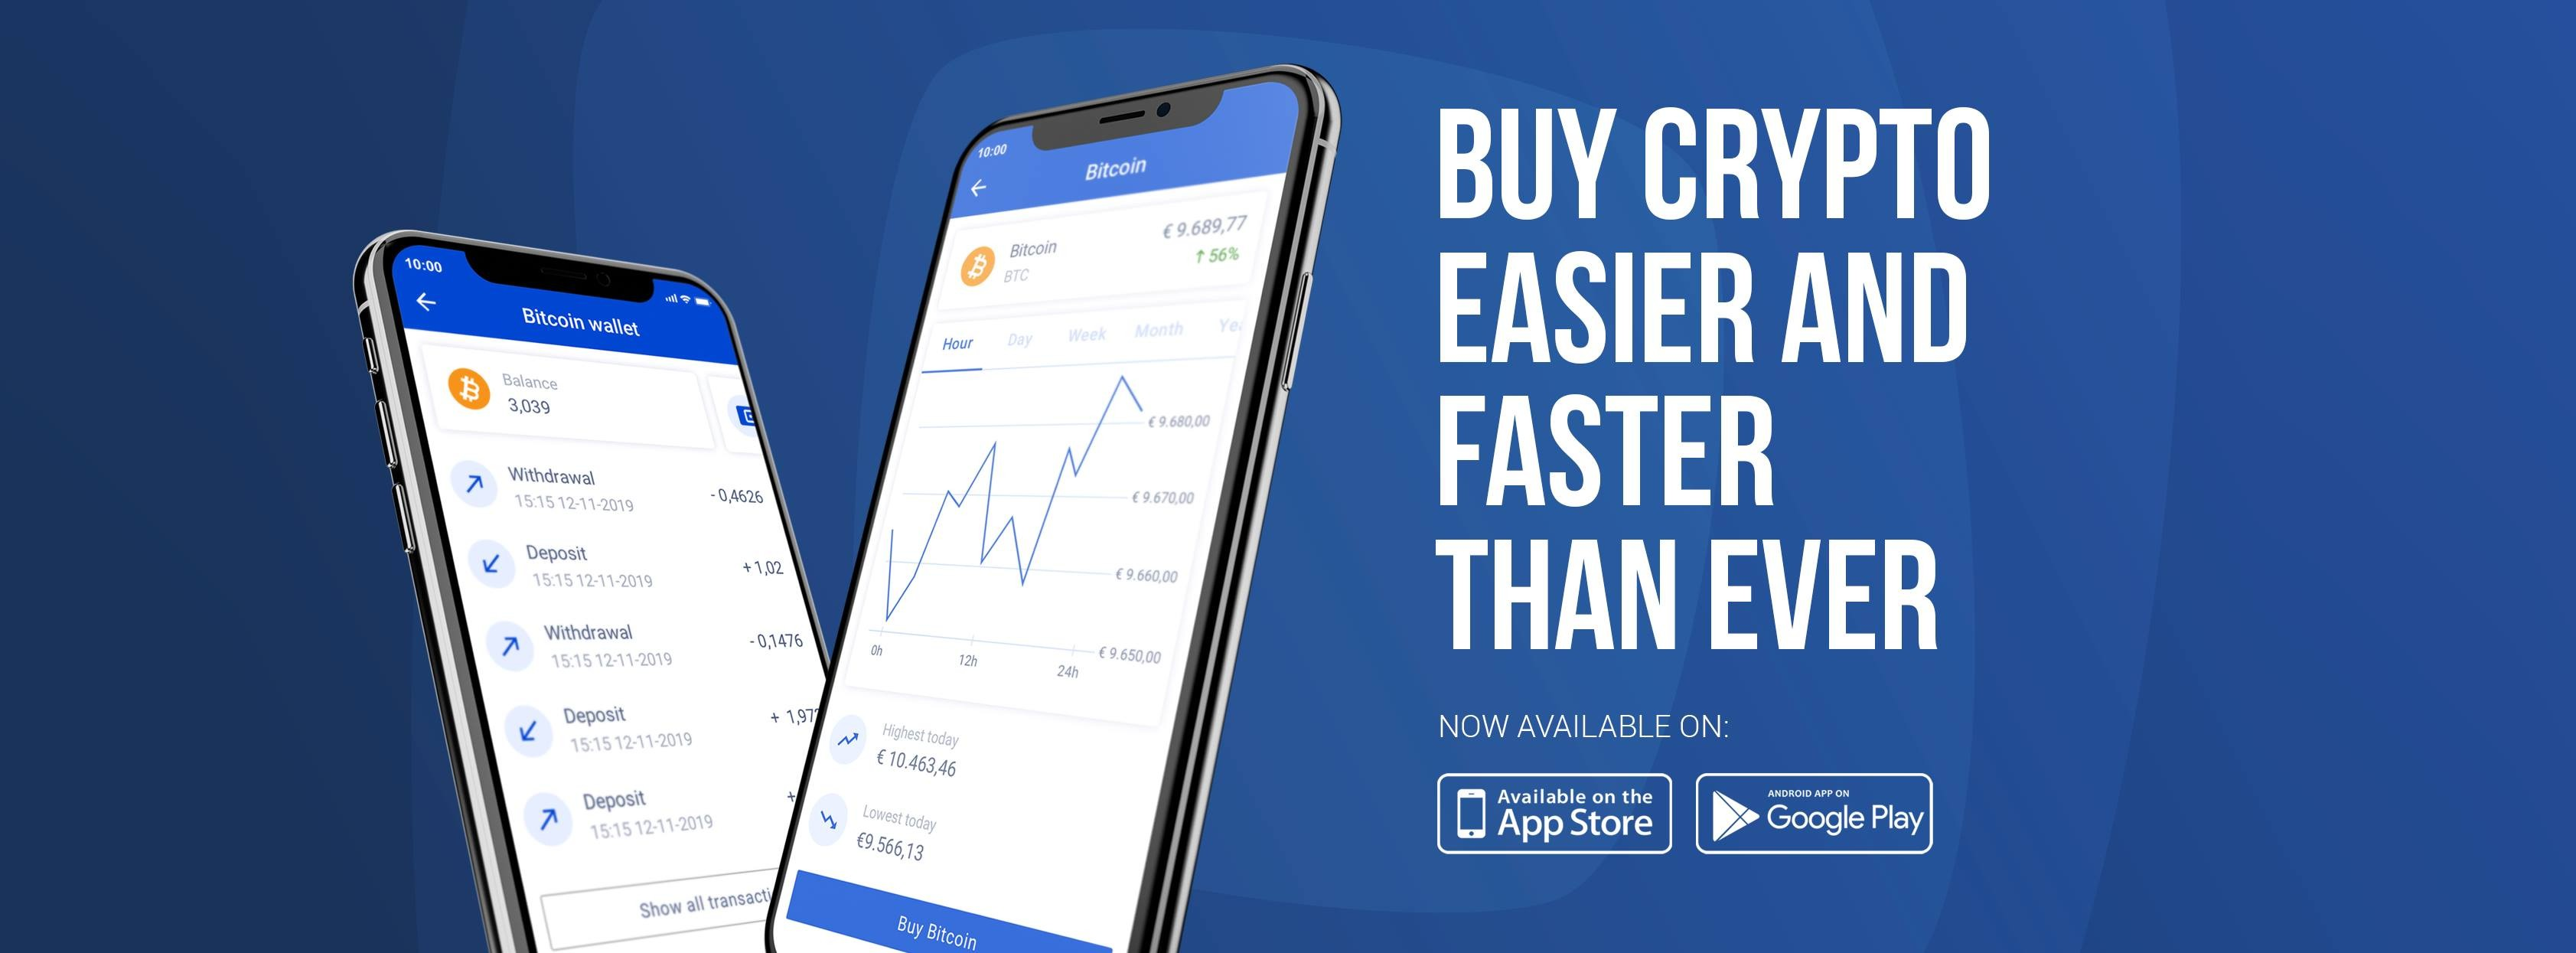 best site to buy cryptocurrency europe